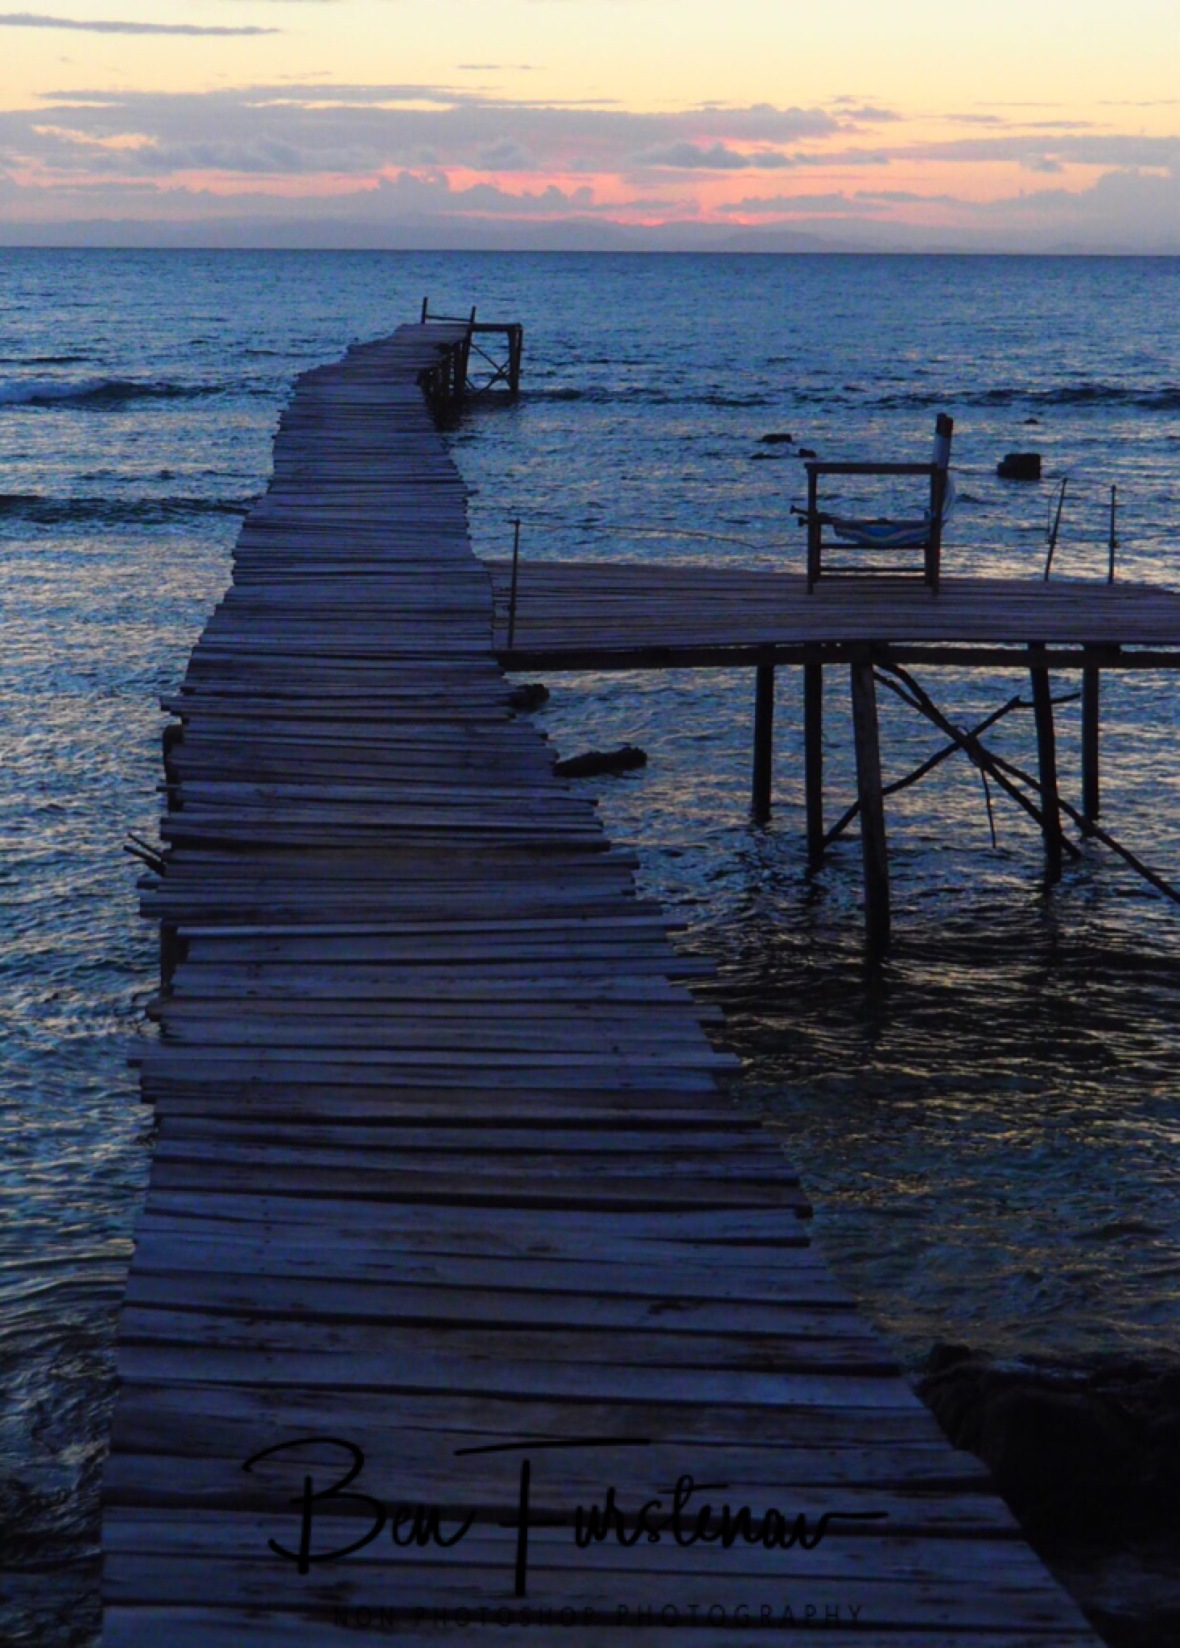 Jetty and chair